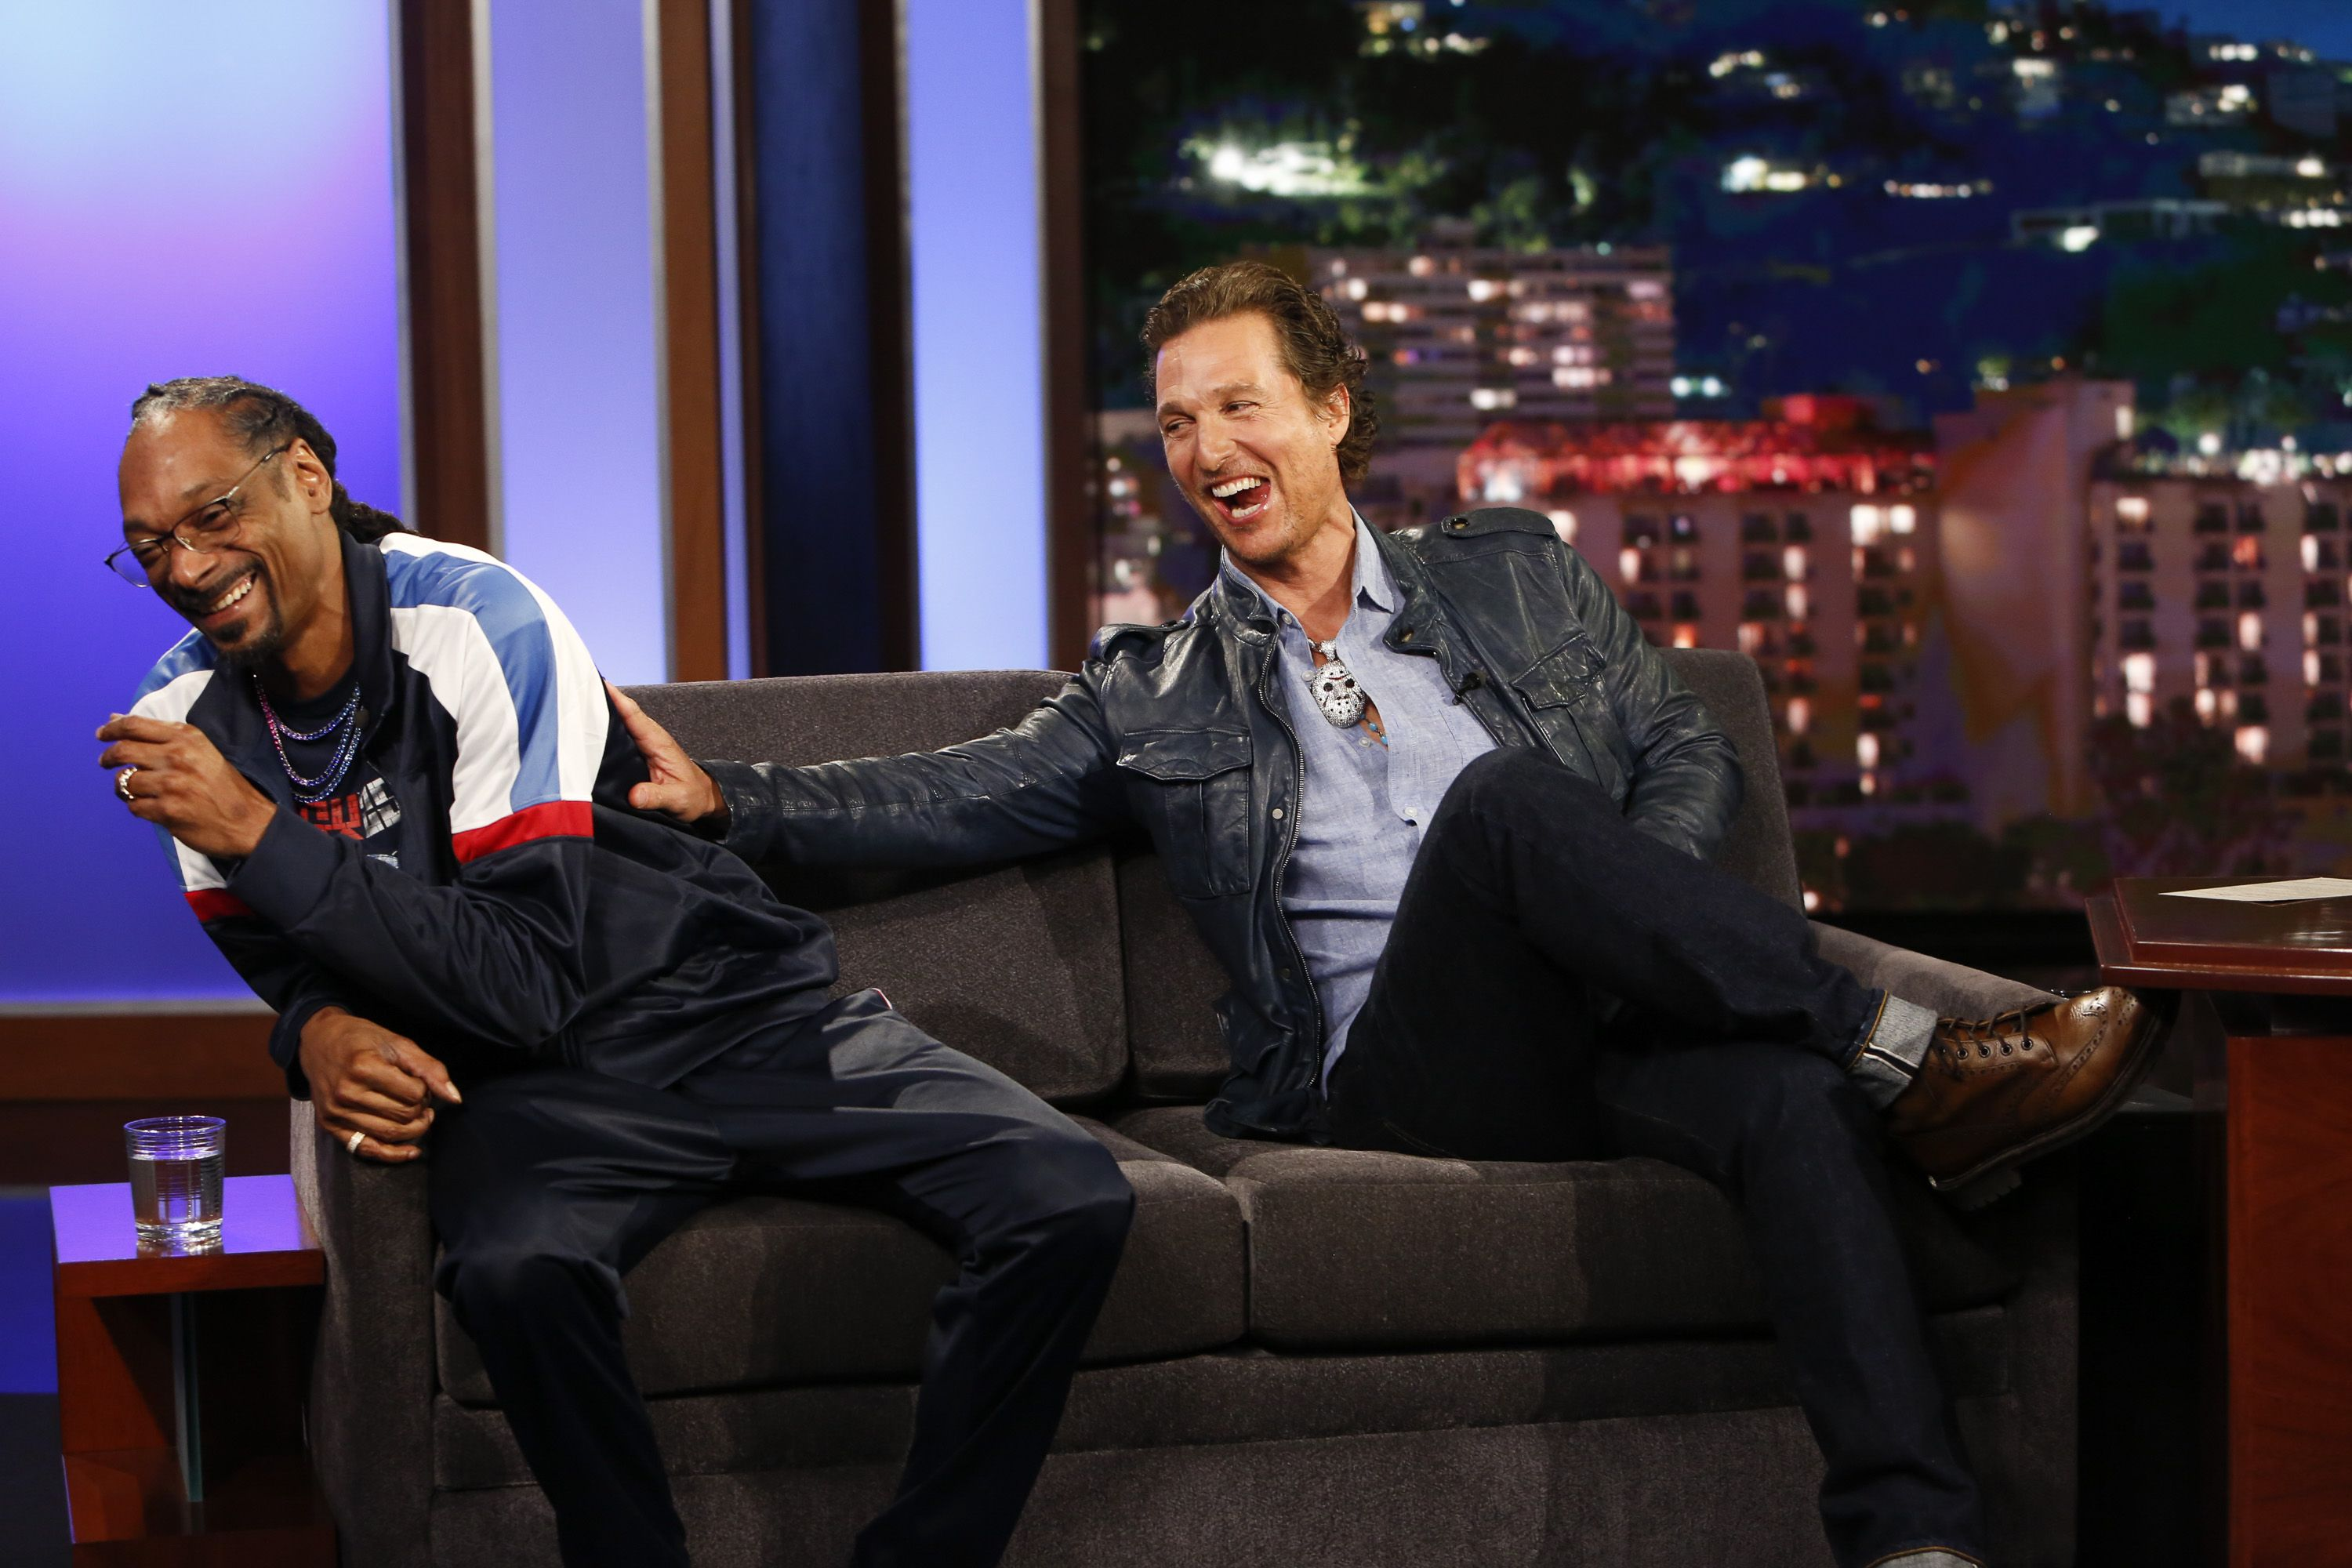 Snoop Dogg Told Us That Stoned Matthew McConaughey Is 'the Greatest Rapper in the World'